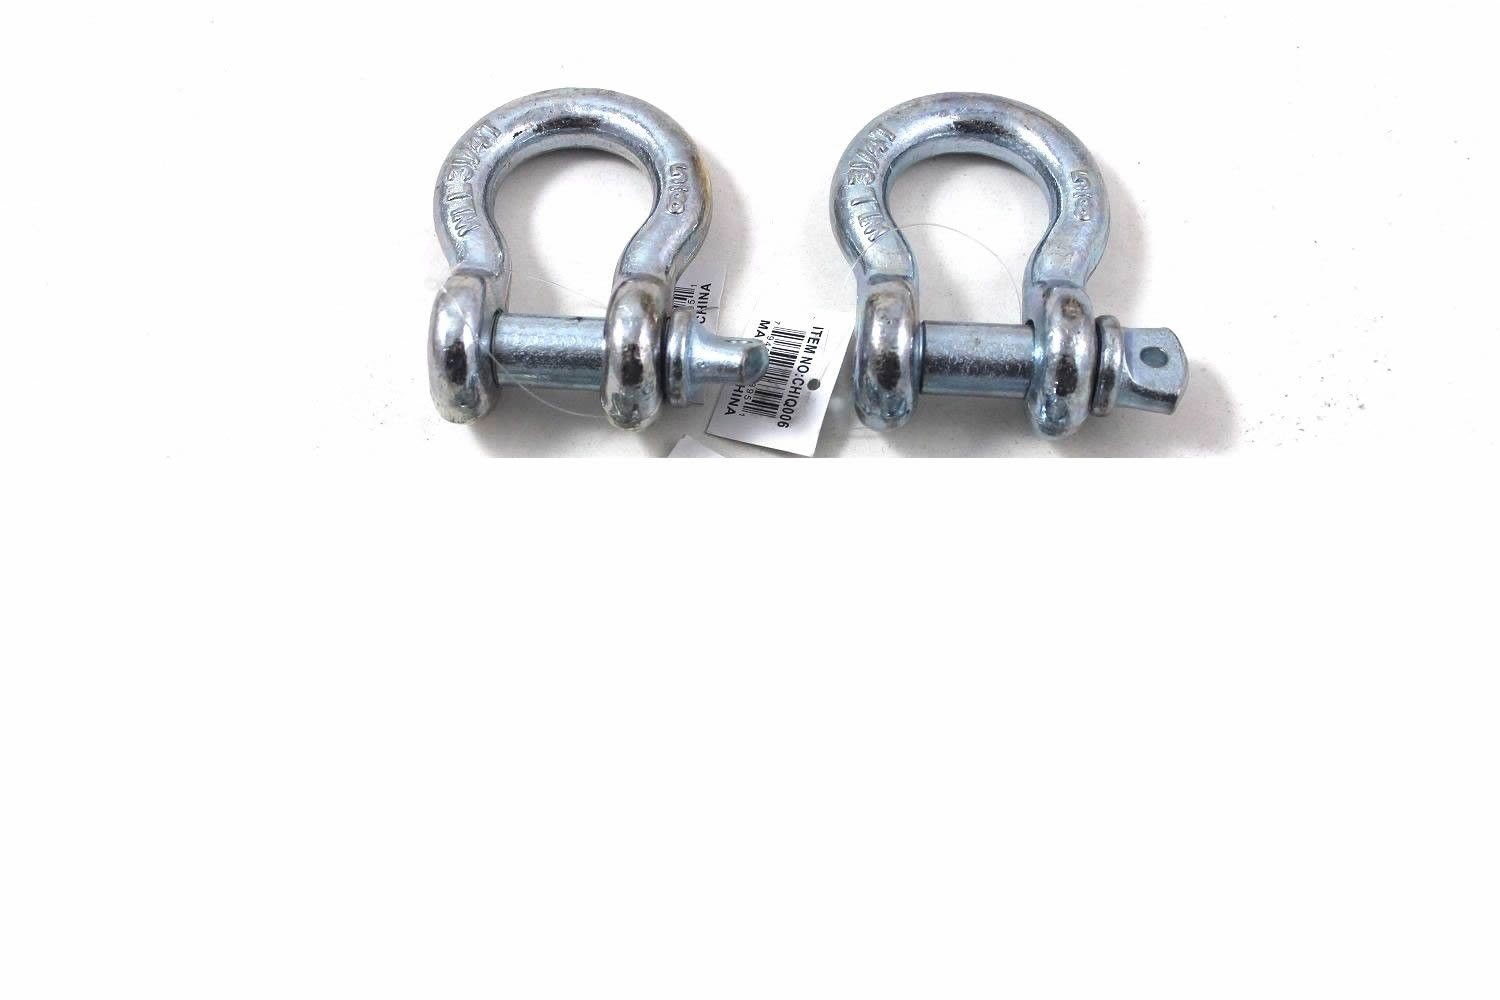 2 Pack 5/8' Bow Shackle Clevis Screw Pins Anchor Rope Cable Chain Rigging Generic 4332987635